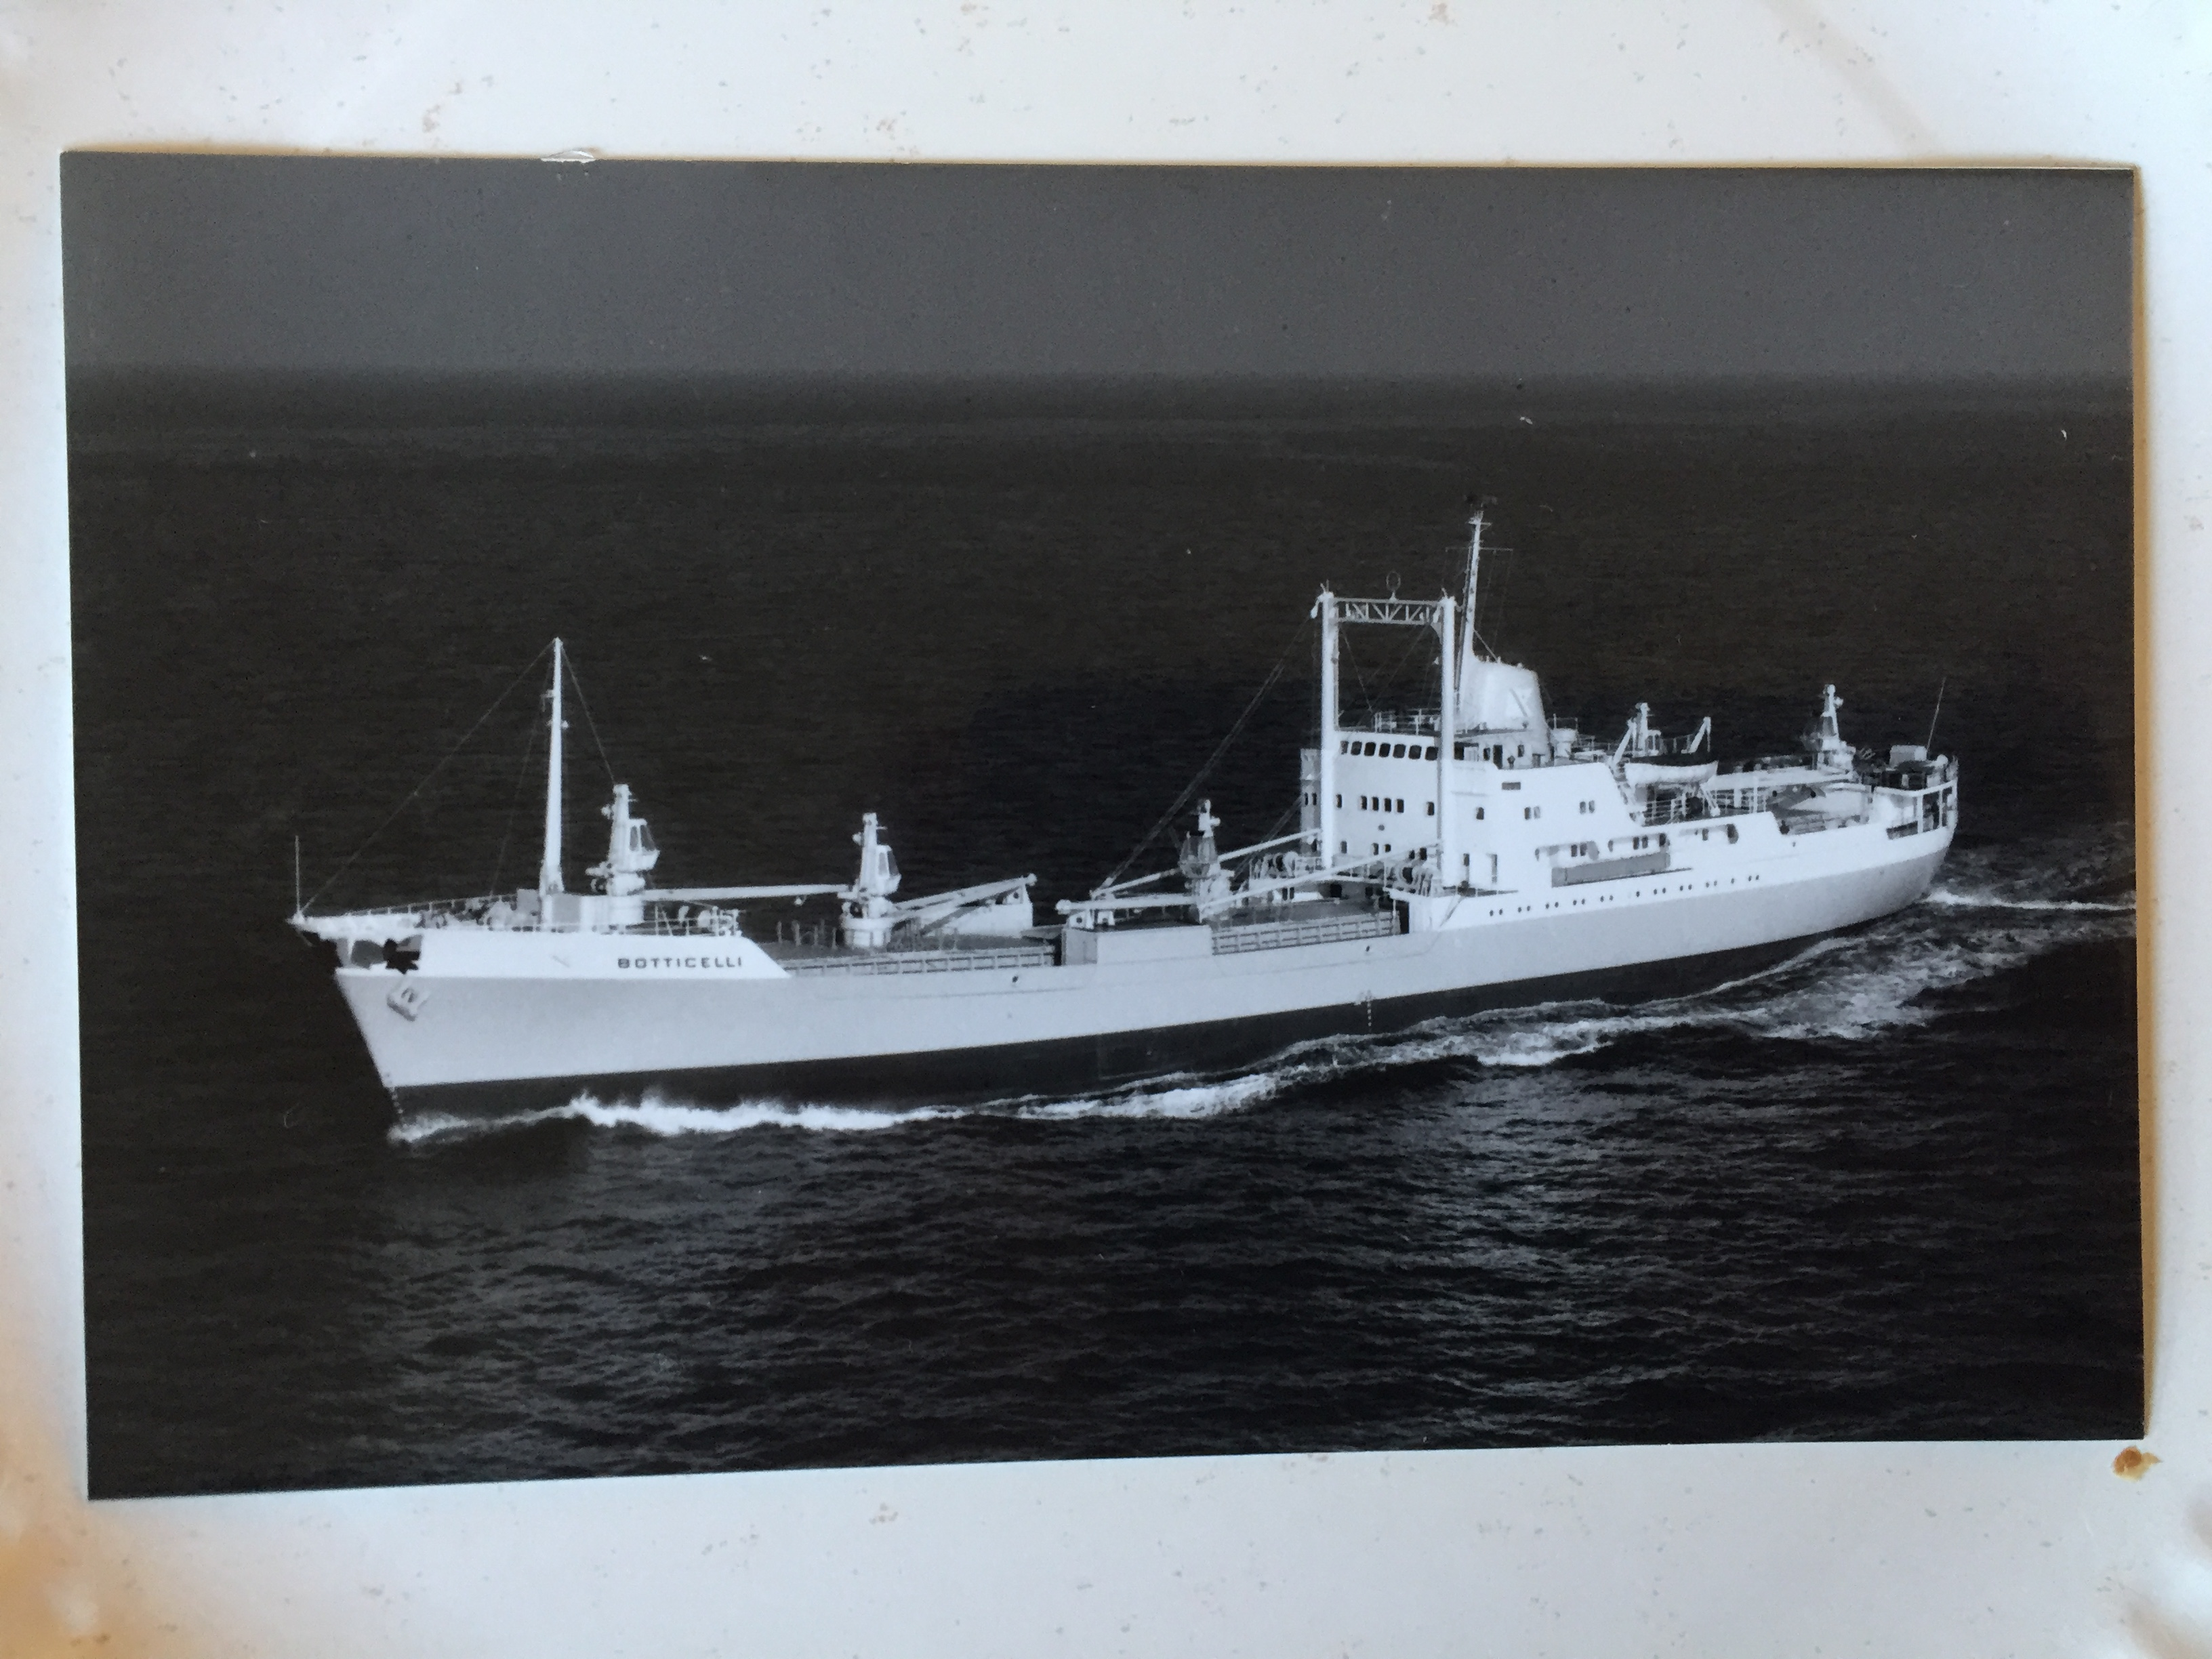 B/W PHOTOGRAPH OF THE FRED OLSEN LINE VESSEL THE BOTTICELLI